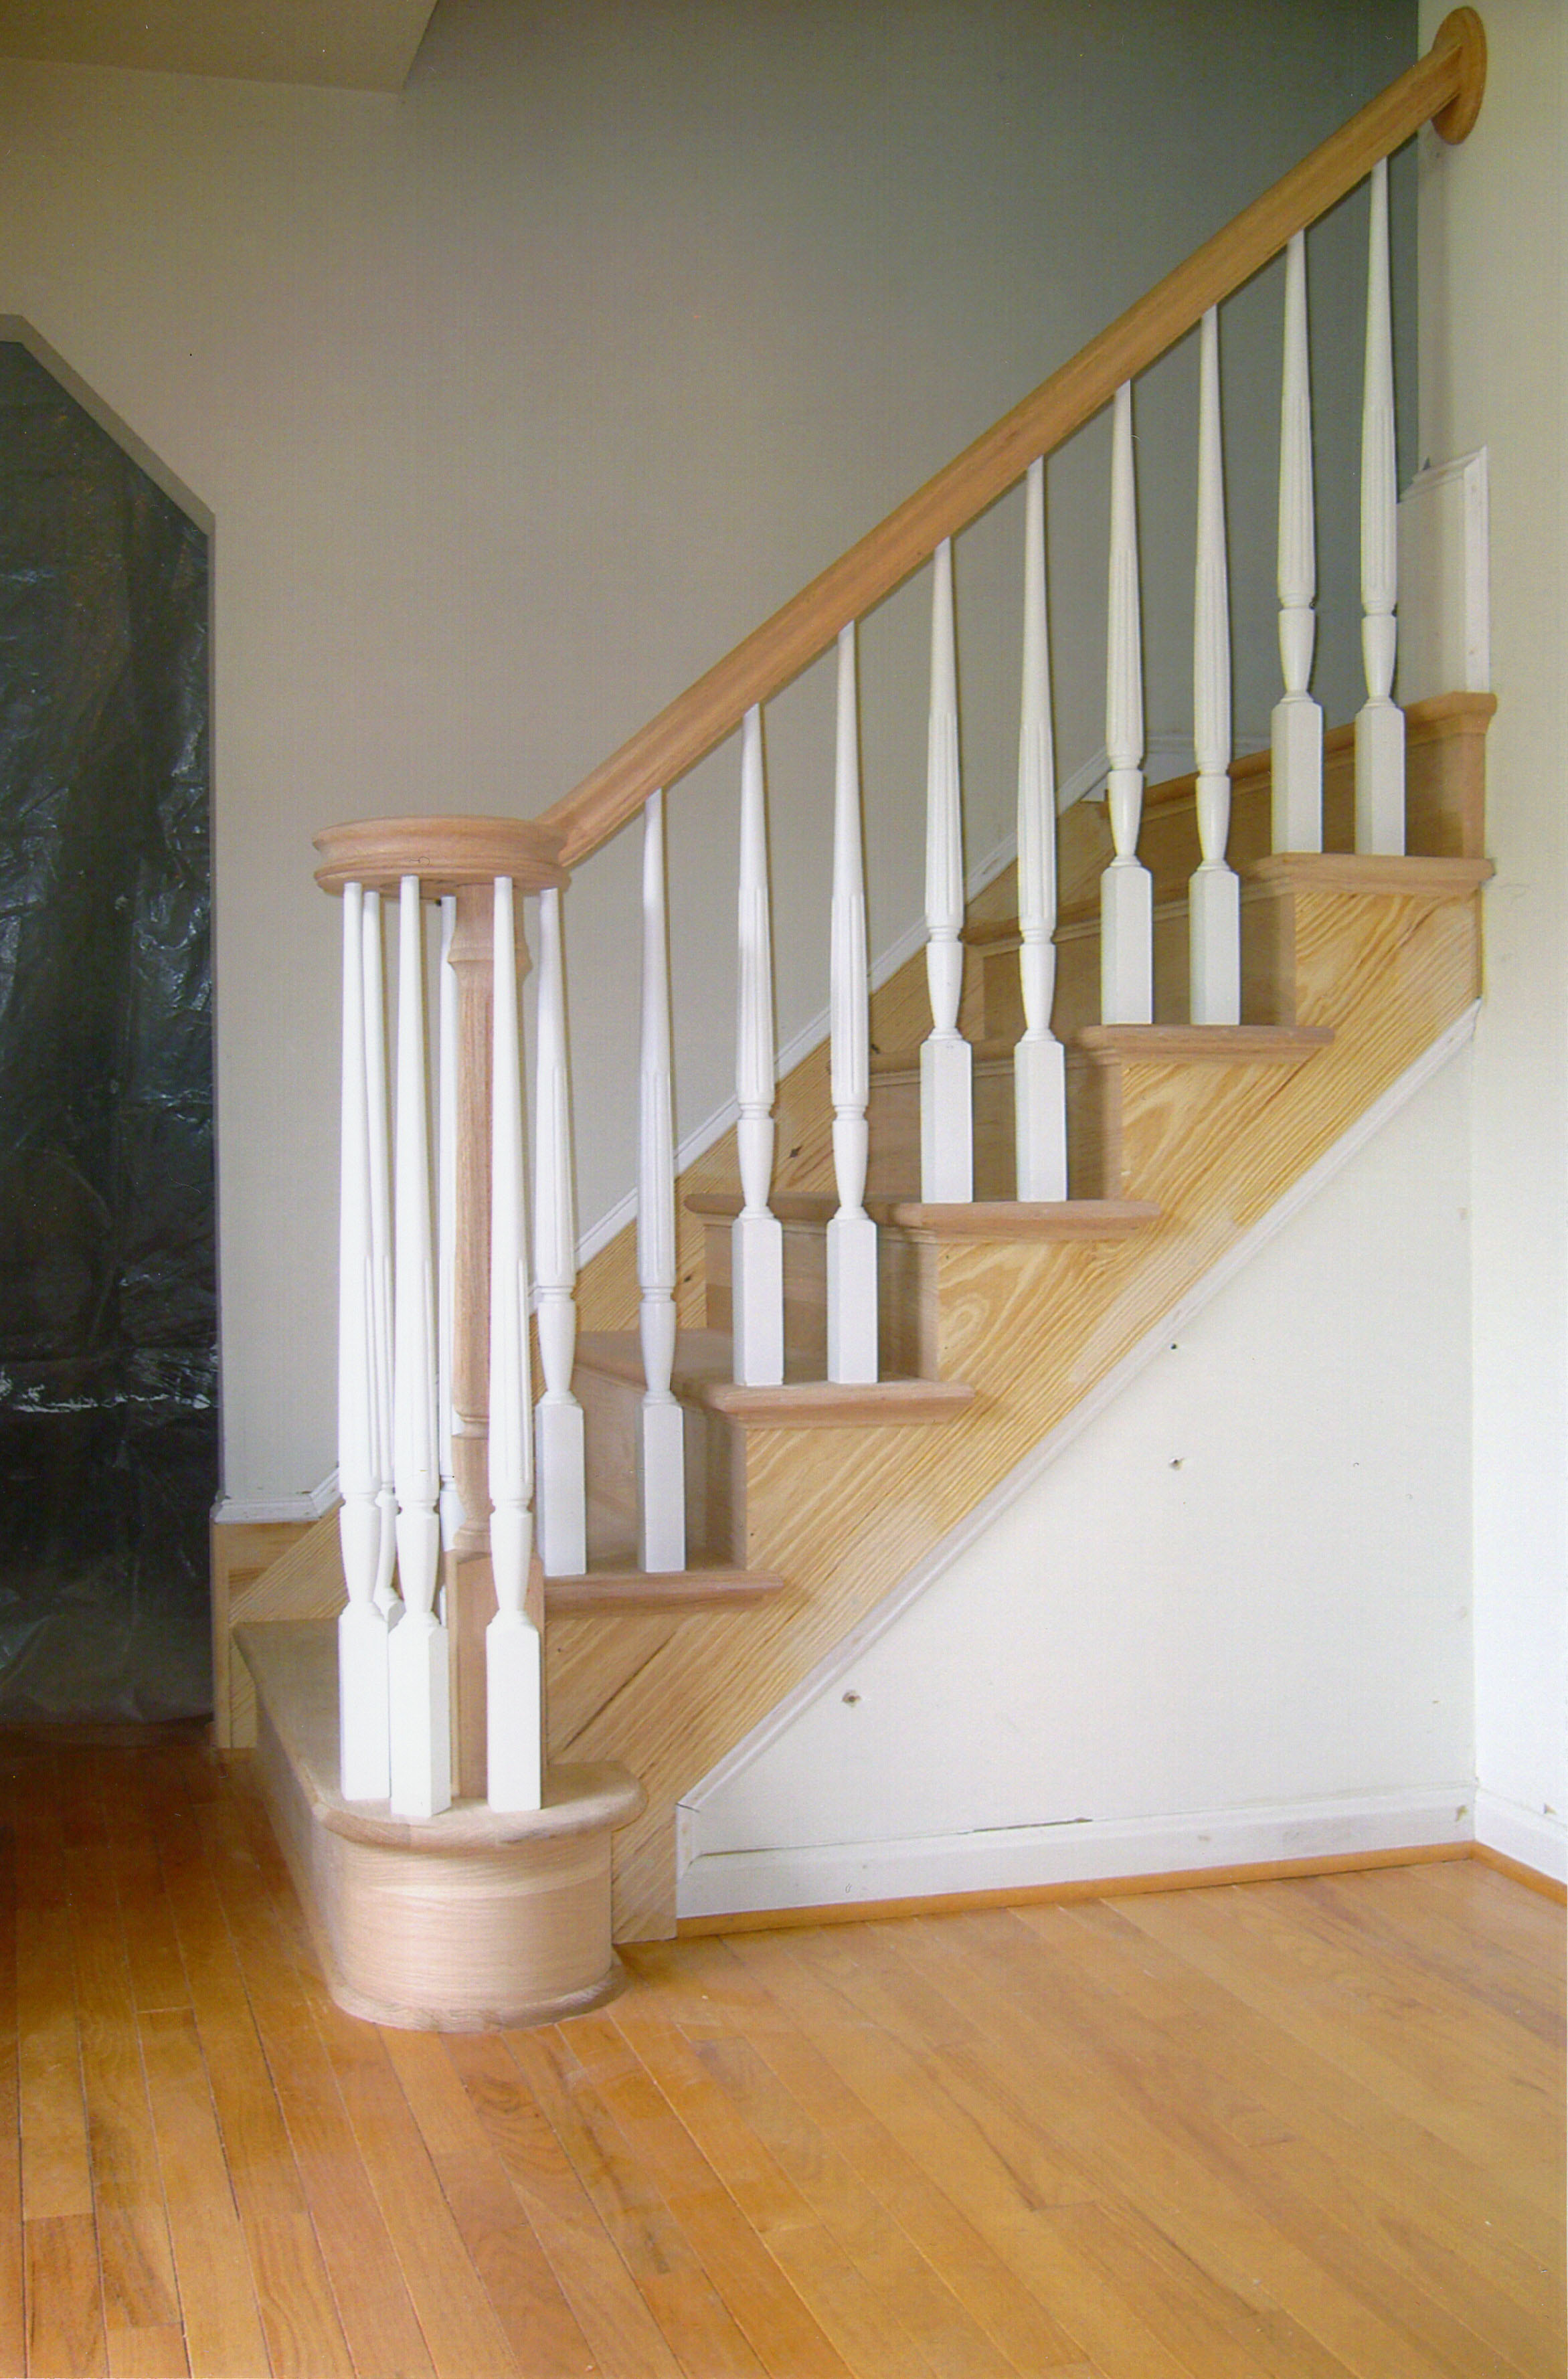 ... Wood Unstained Staircase, Railing With White Balusters ...